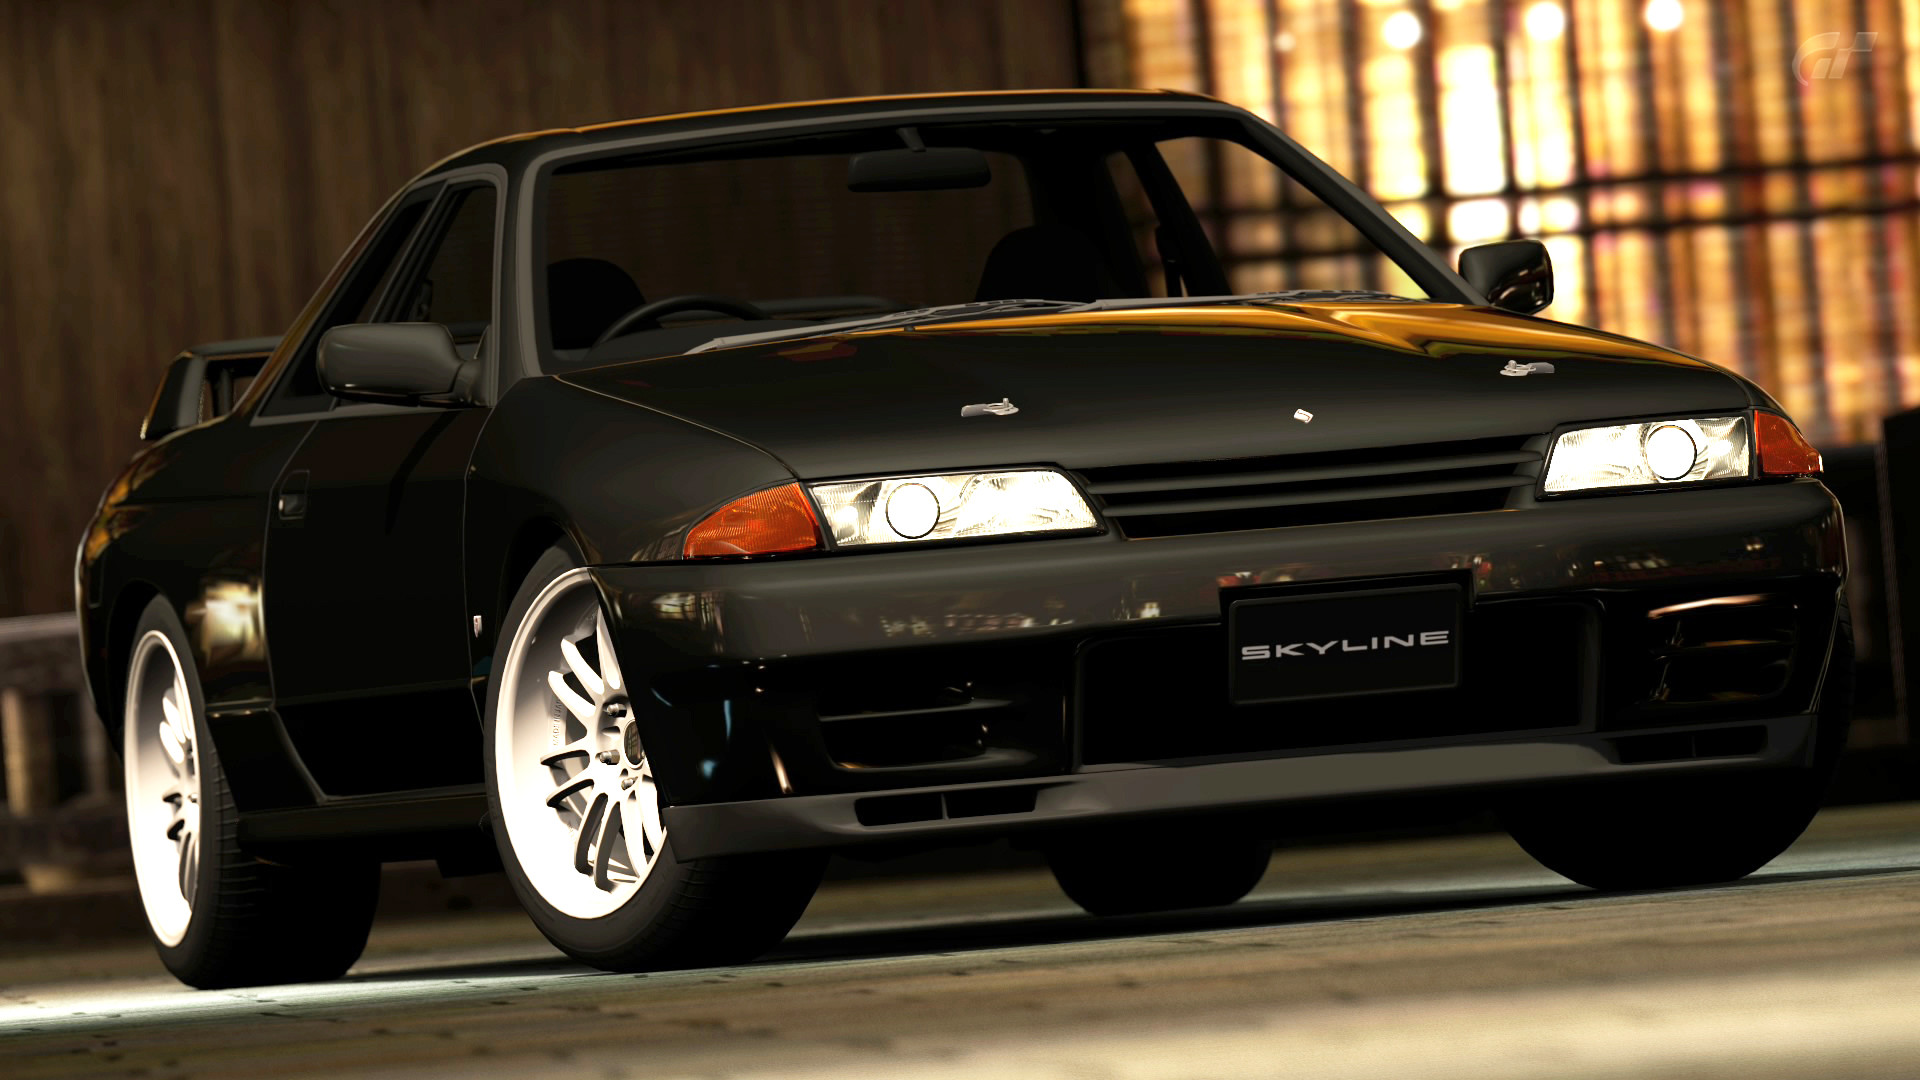 1994 Nissan Skyline GTR R32 VSpec II GT5 by Vertualissimo on